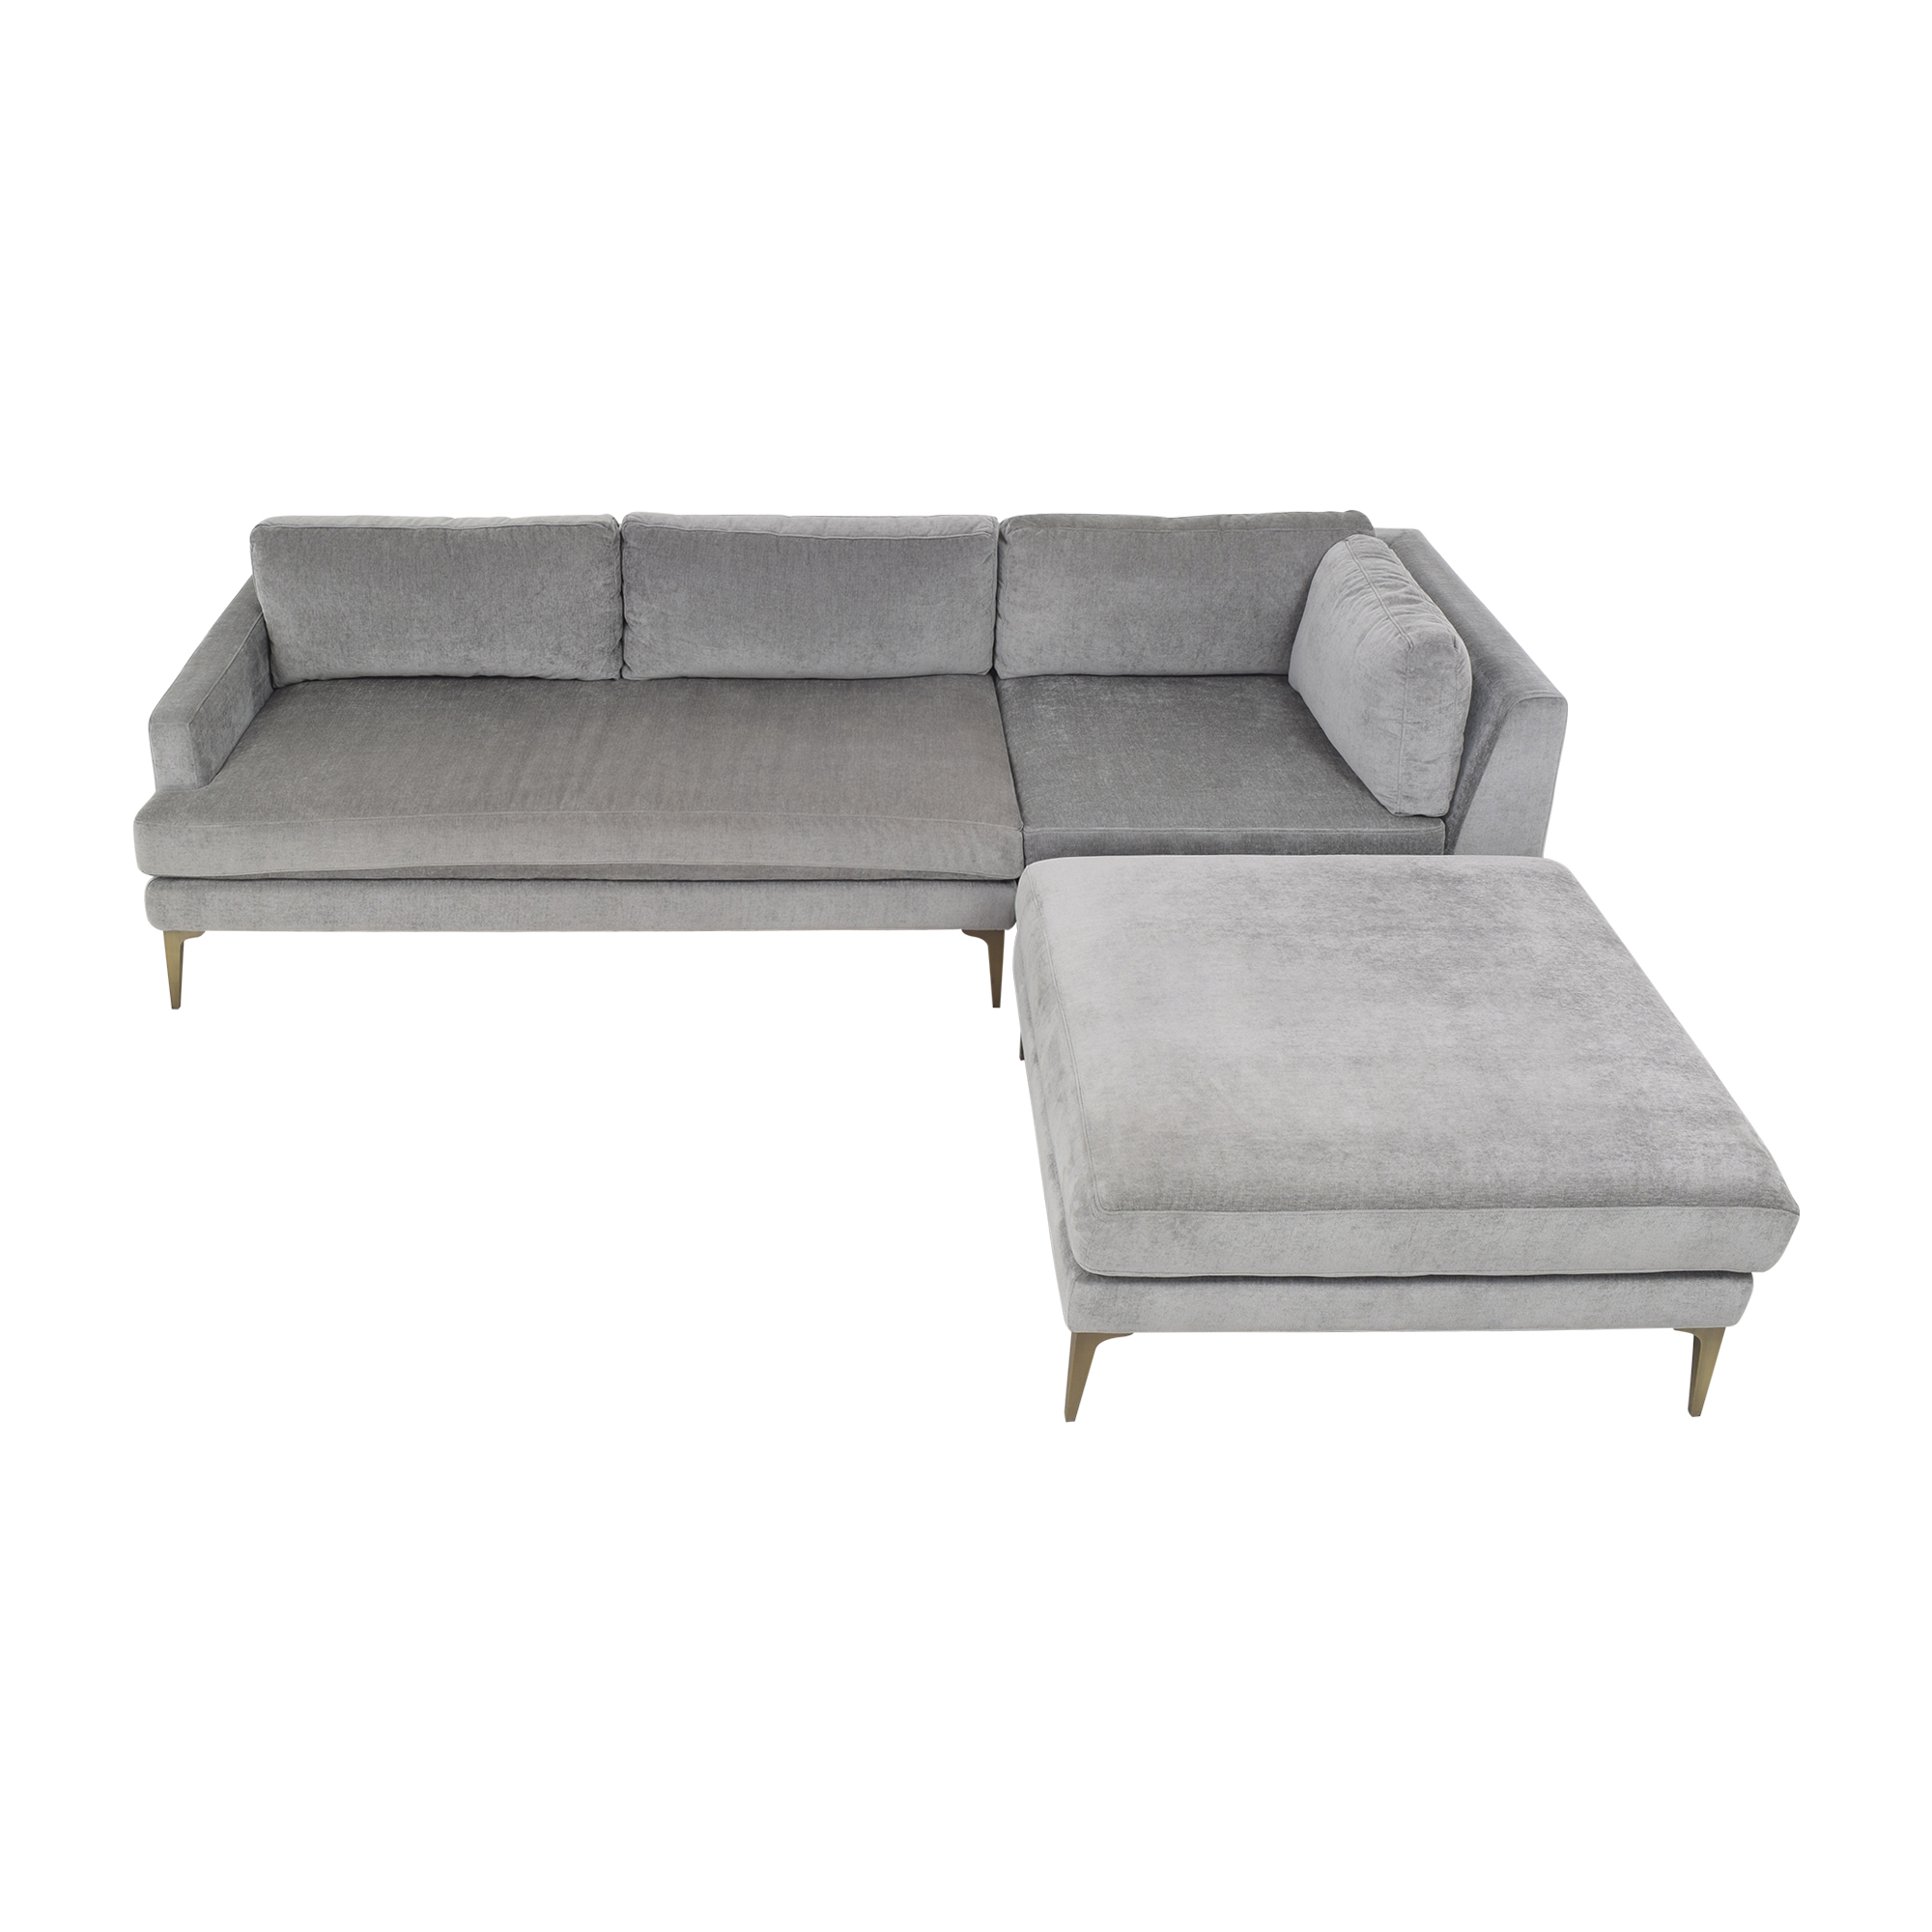 West Elm West Elm Andes Three Piece Chaise Sectional grey